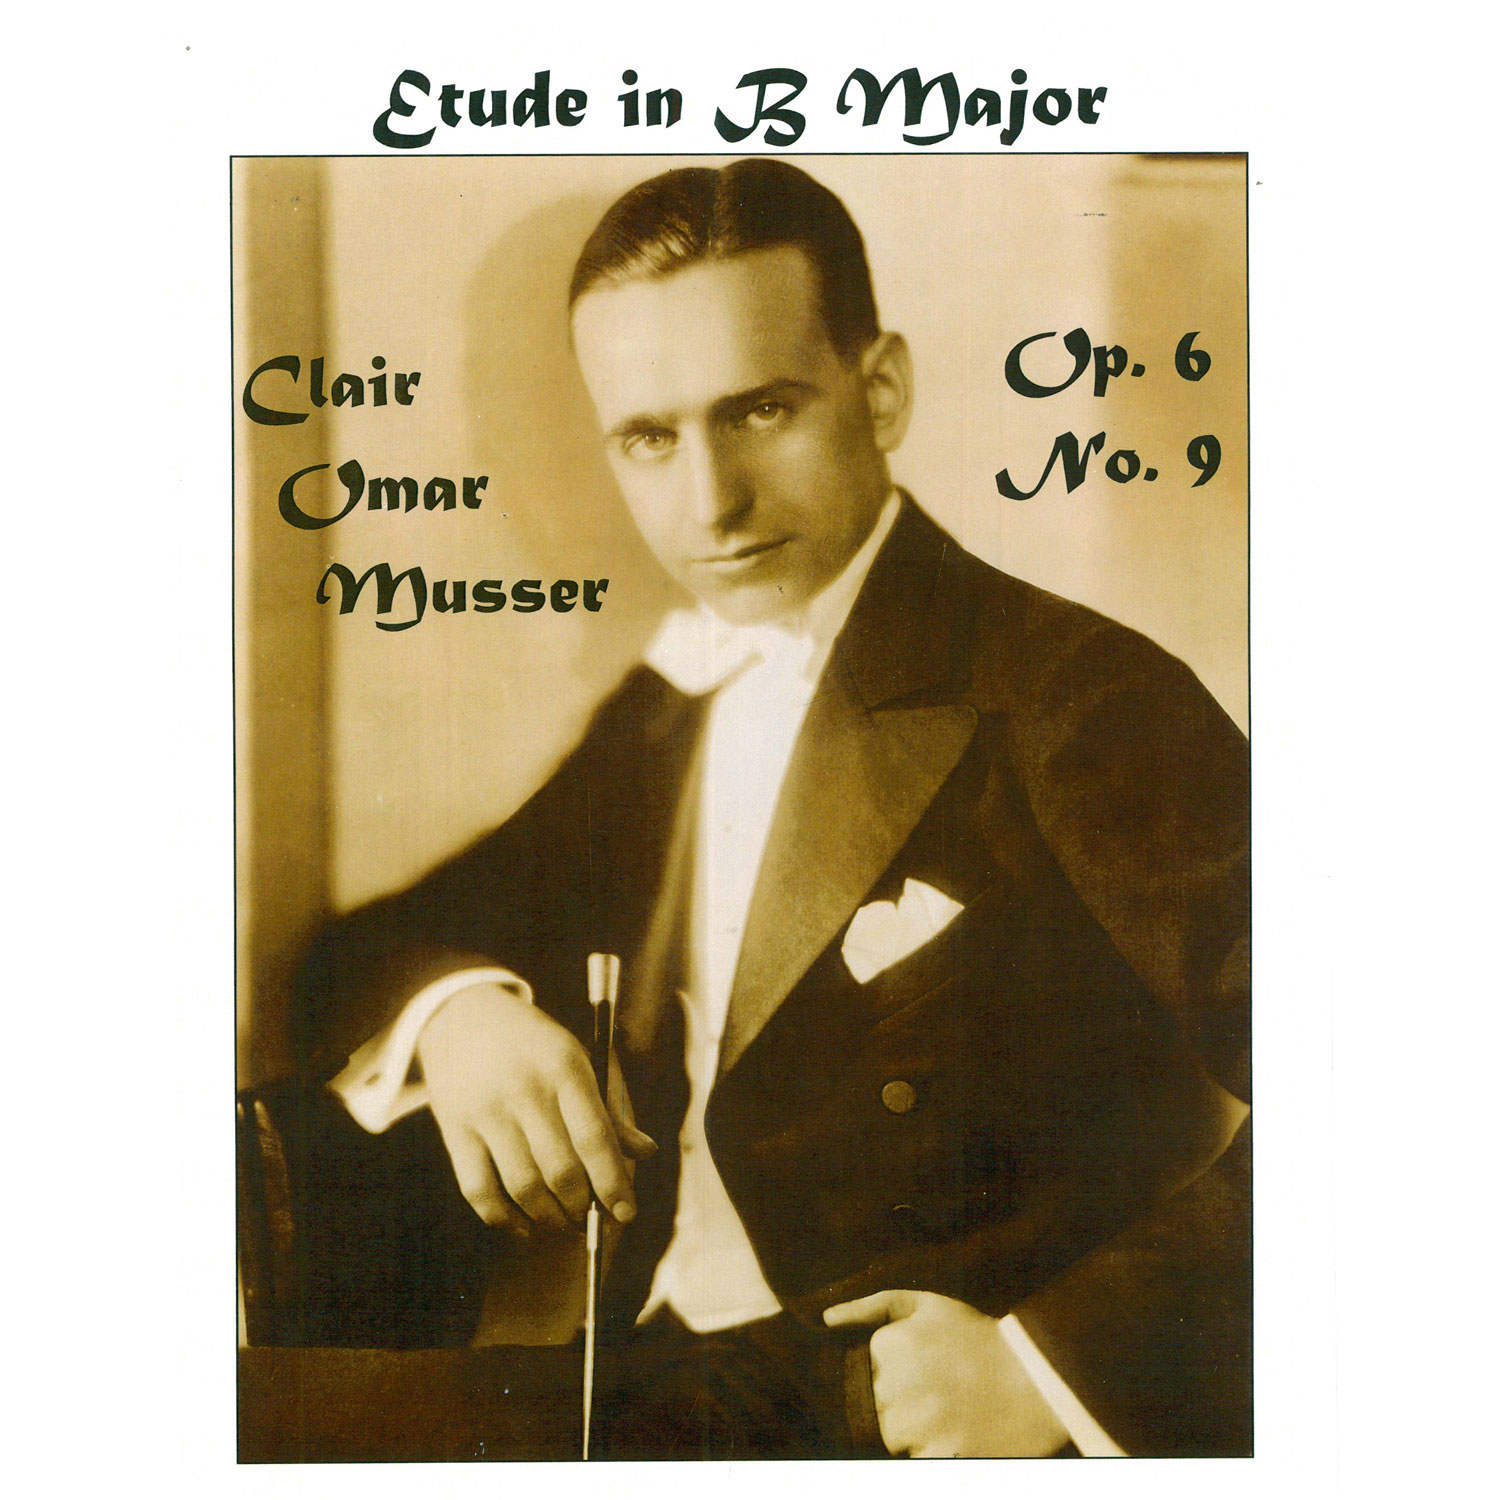 Etude in B Major Op. 6 No. 9 by Clair Omar Musser